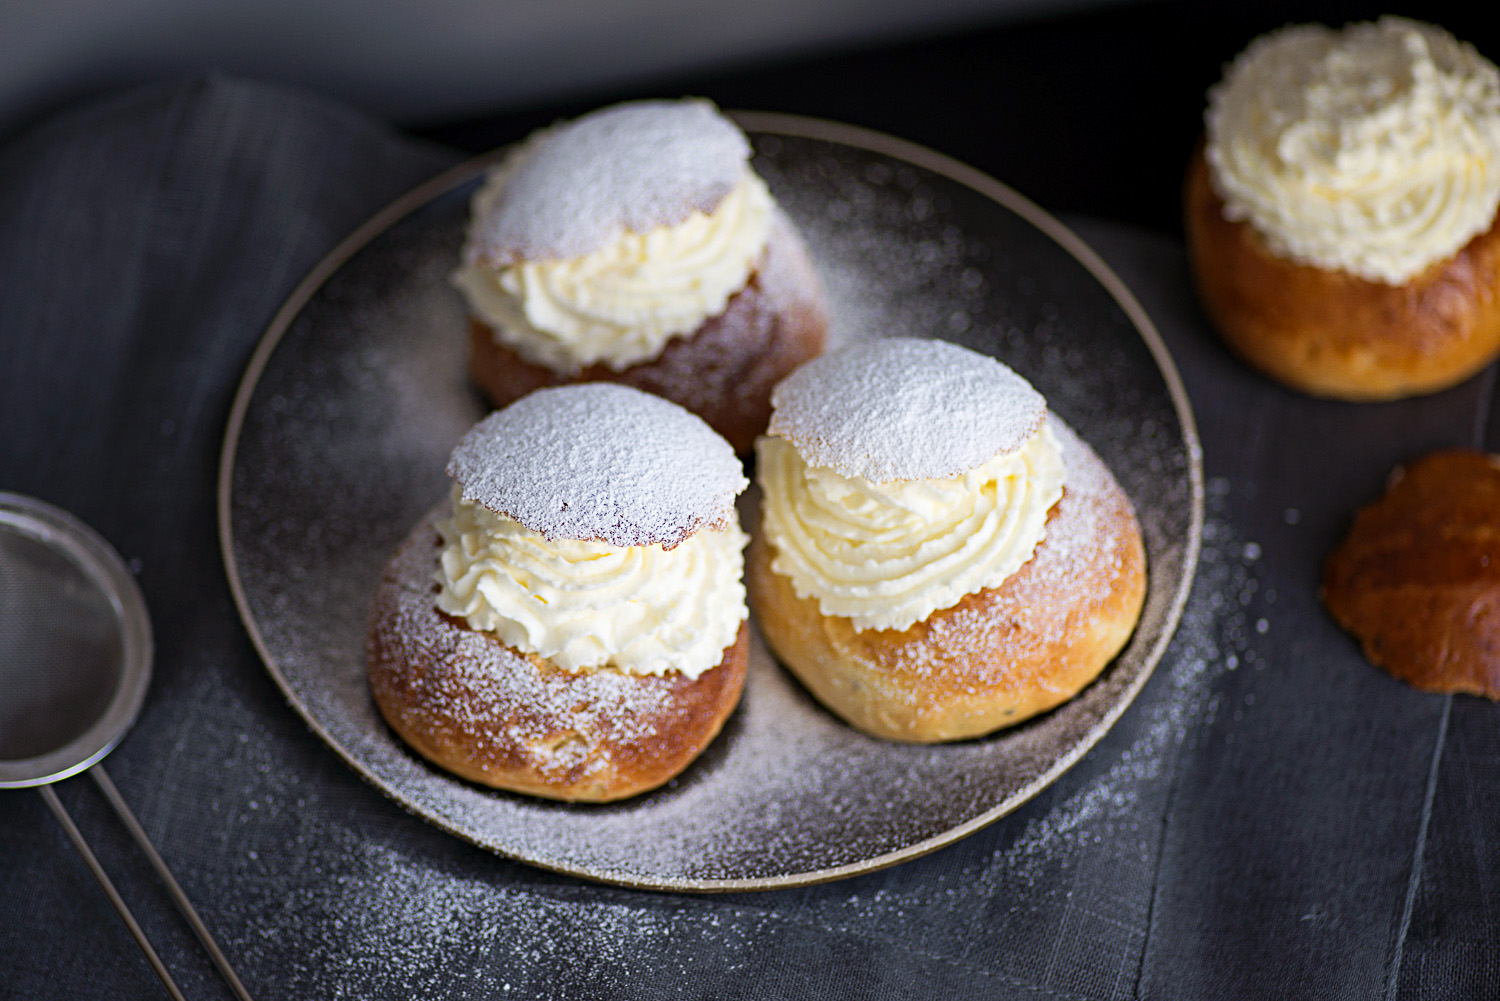 Semlor, Swedish Lent buns with whipped cream